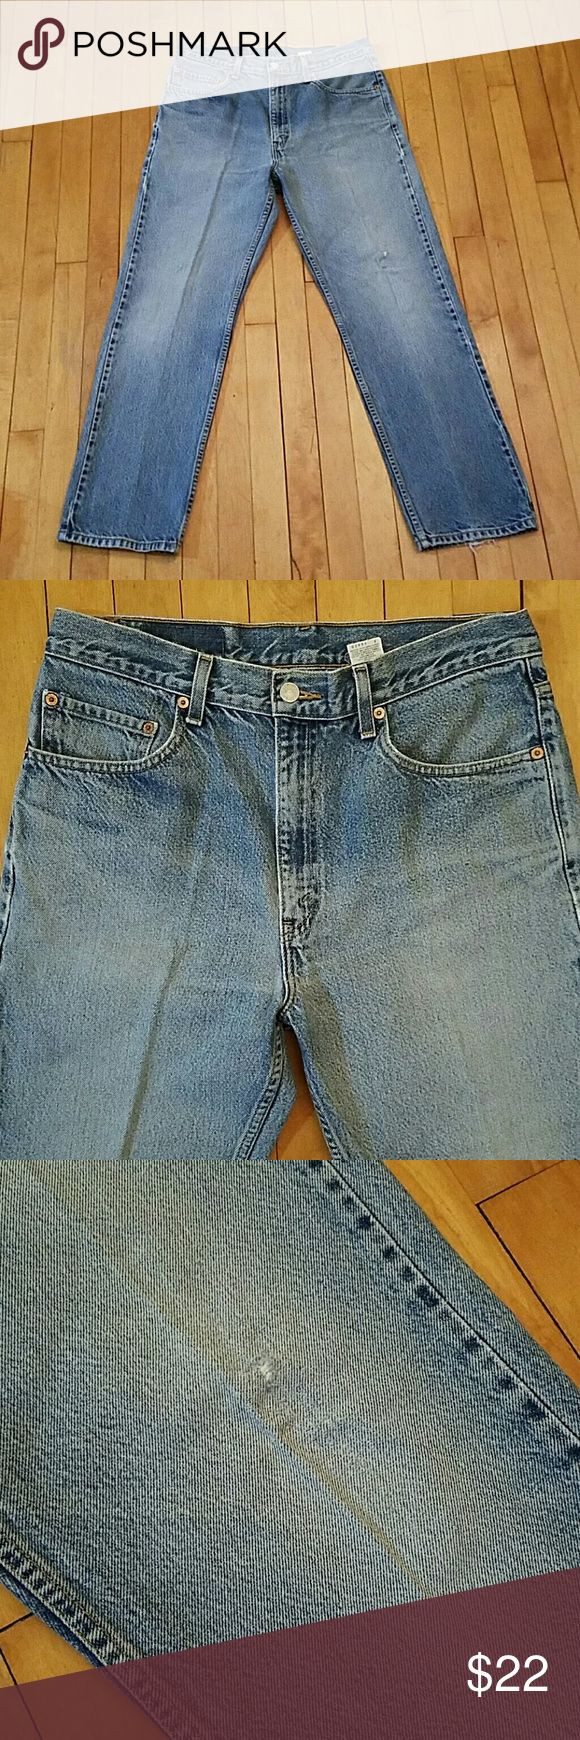 """Vintage Levi's 505 Jeans Vintage Levi's 505 Jeans.  Levi's? will keep your look stylishly classic with the original 505? jeans. The medium high rise and zip fly is casual and comfortable. They have a slim leg that makes them modern without being skinny cut. Perfectly worn vintage Levi's. Wear to knee and hems. Size 34 x 29.  505? Regular fit Sits below waist. Classic seat and thigh. Straight leg. 16 1/2"""" Leg opening. Zip fly. Would make amazing shorts!   Urban Outfitters Urban Renewal LF…"""